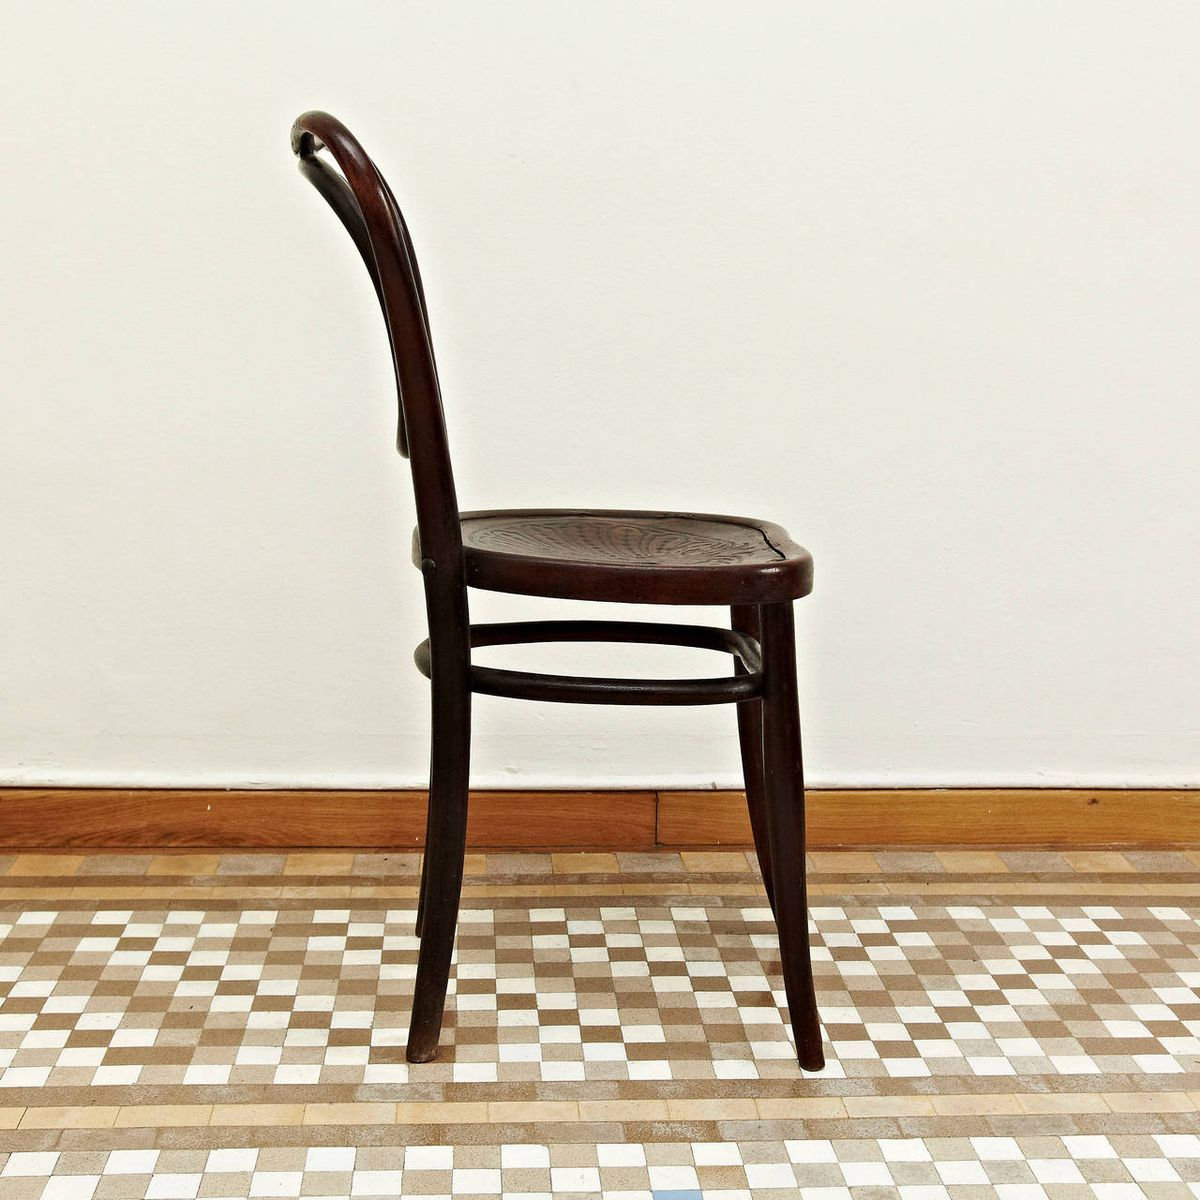 bentwood chair from jj kohn 1890s